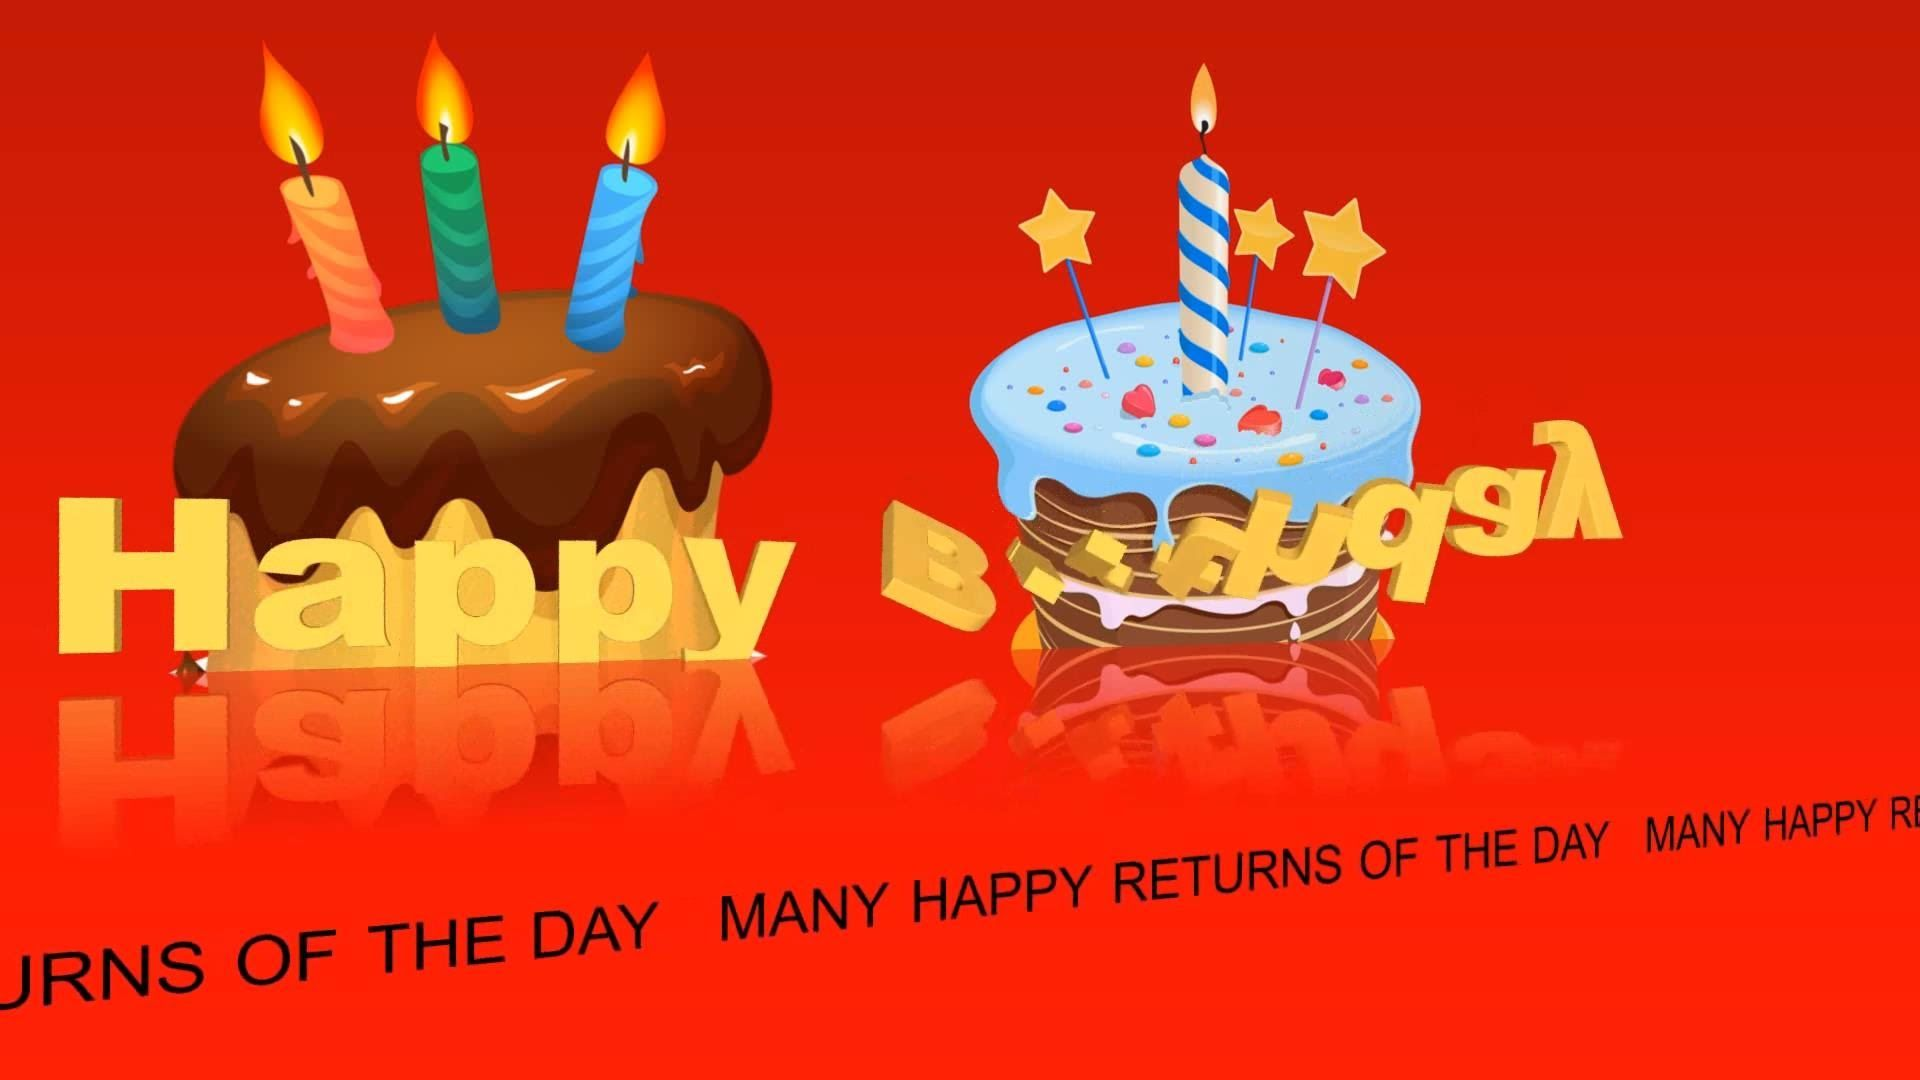 Birthday greetings animated greetings to wish pinterest happy birthday greetings m4hsunfo